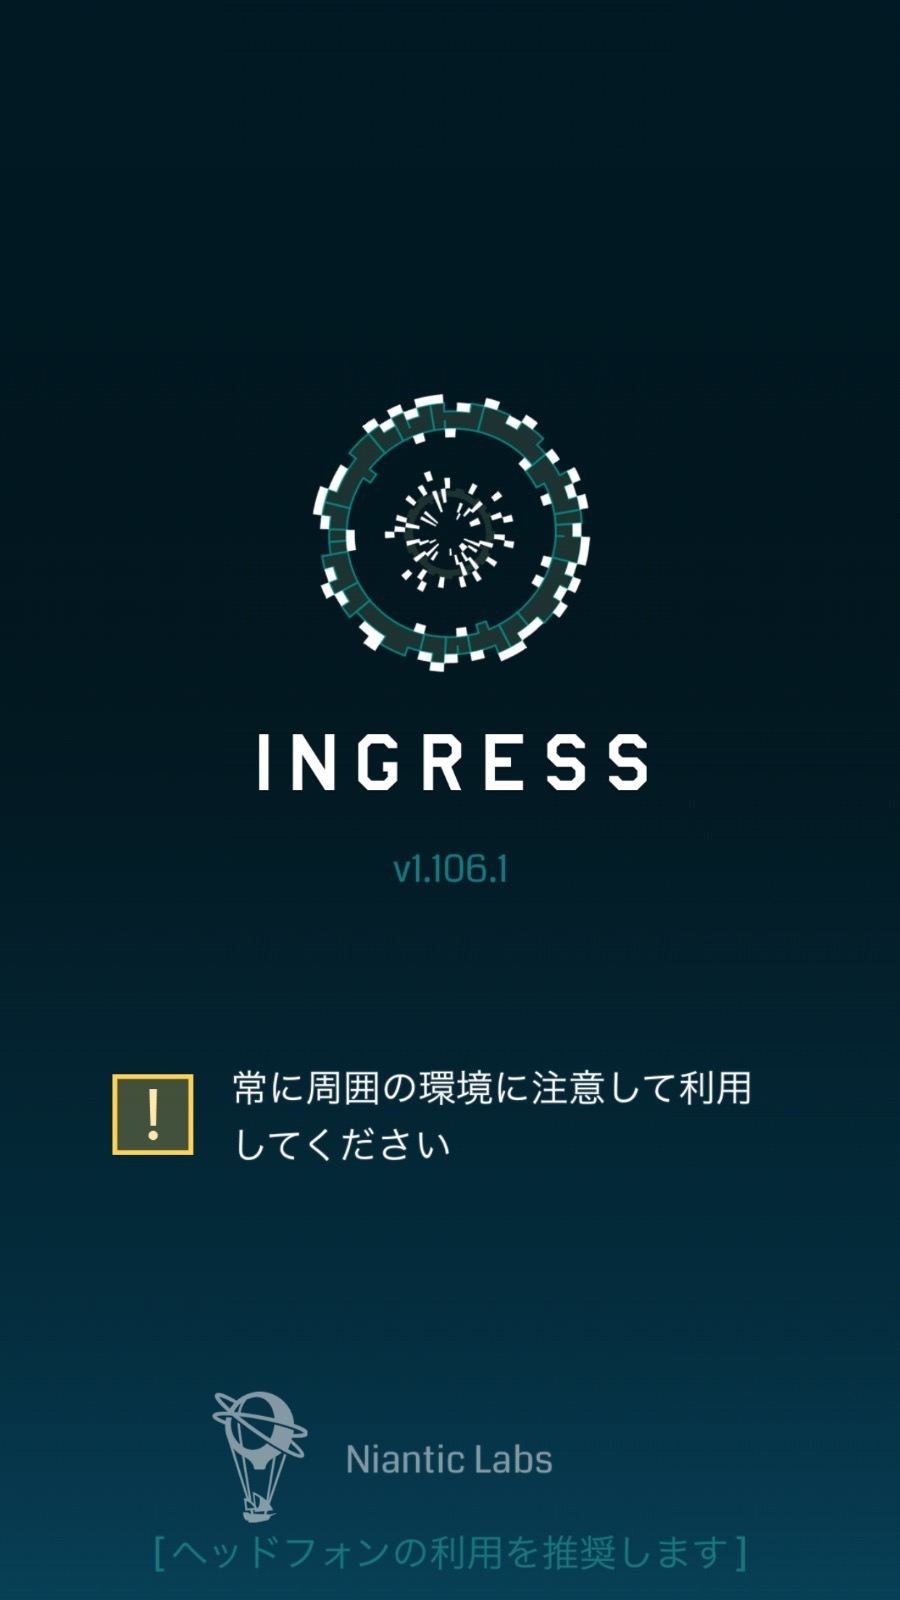 【Ingress】iOS版「Ingress 1.106.1」リリース